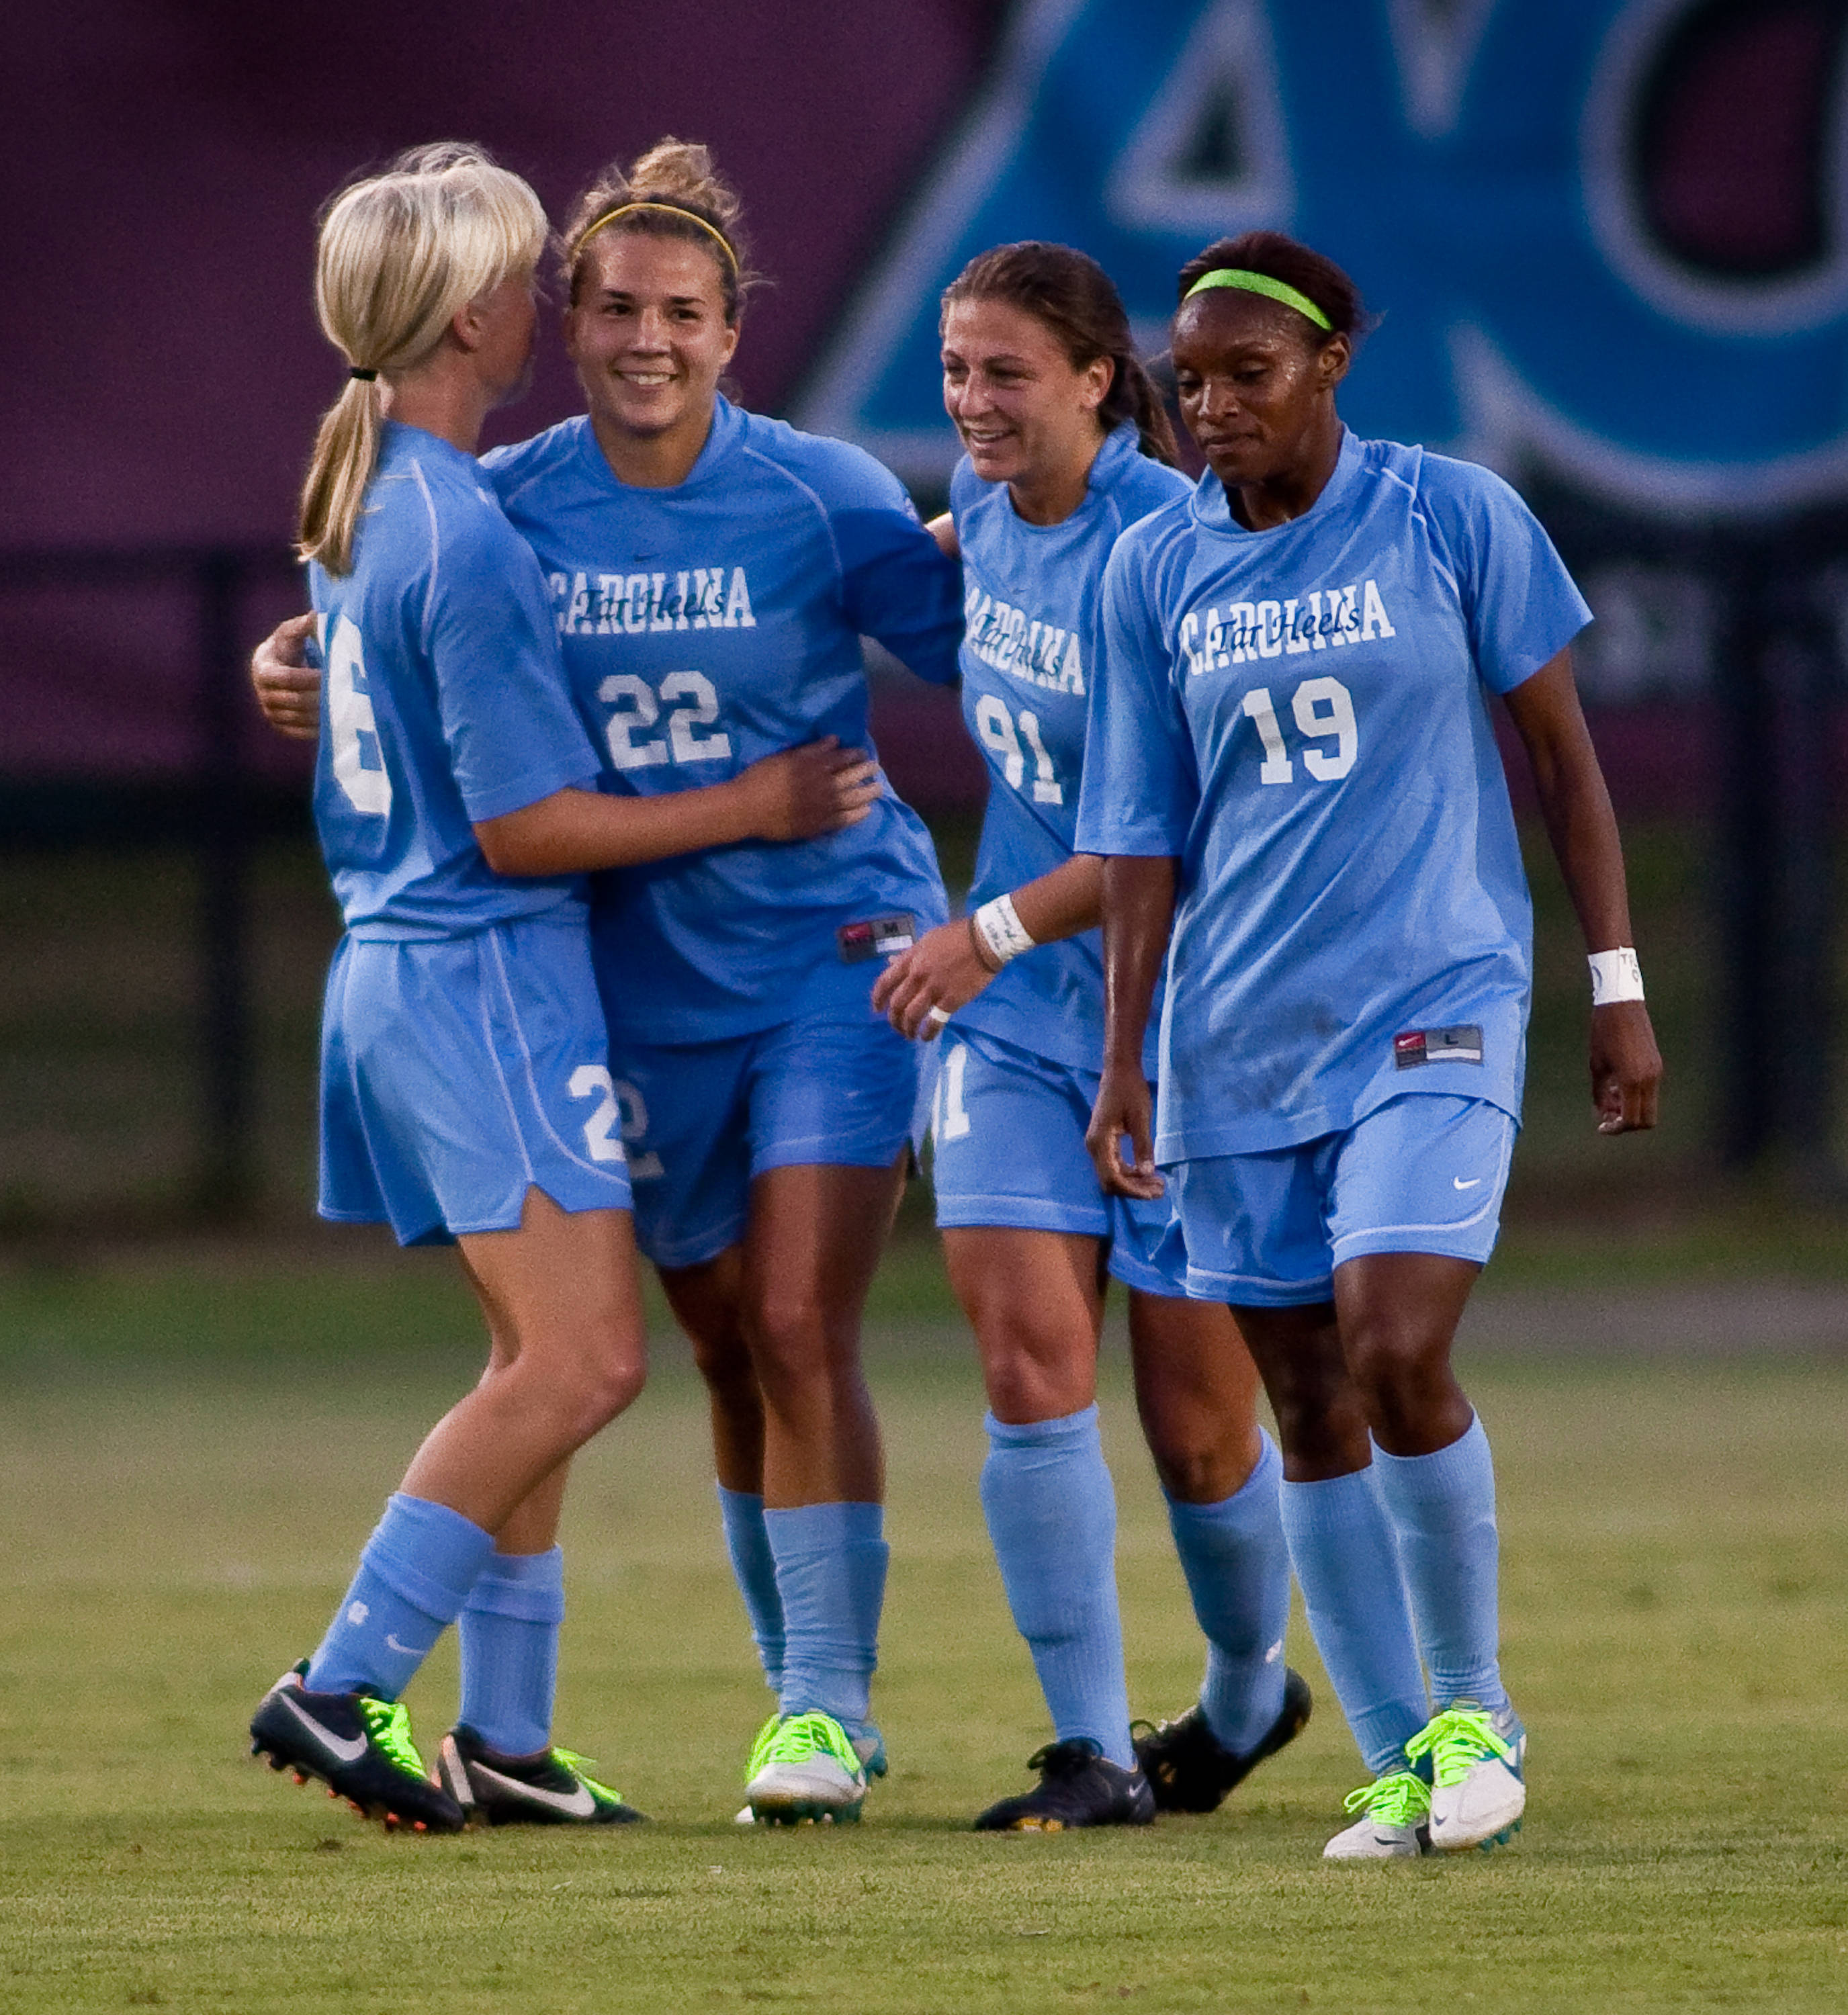 The Tar Heels celebrate after scoring the first goal of the game.